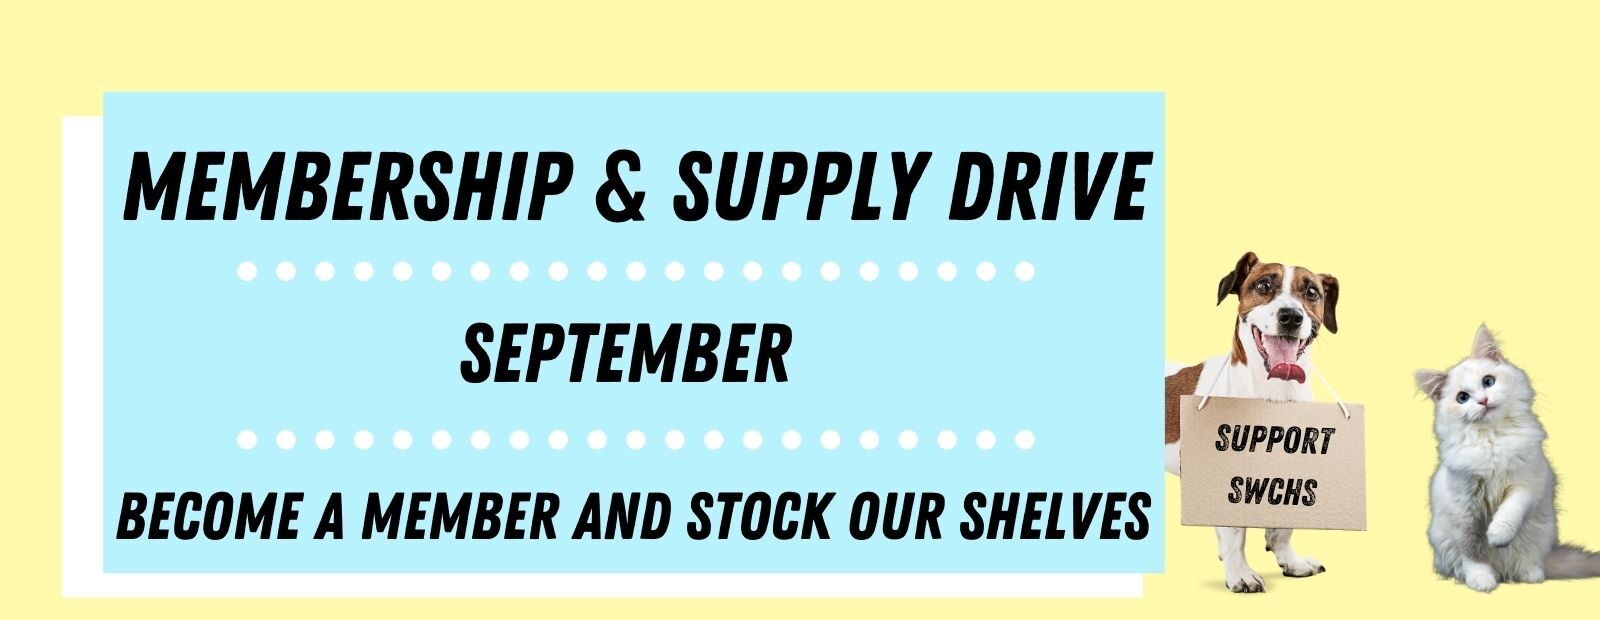 Membership & Supply Drive